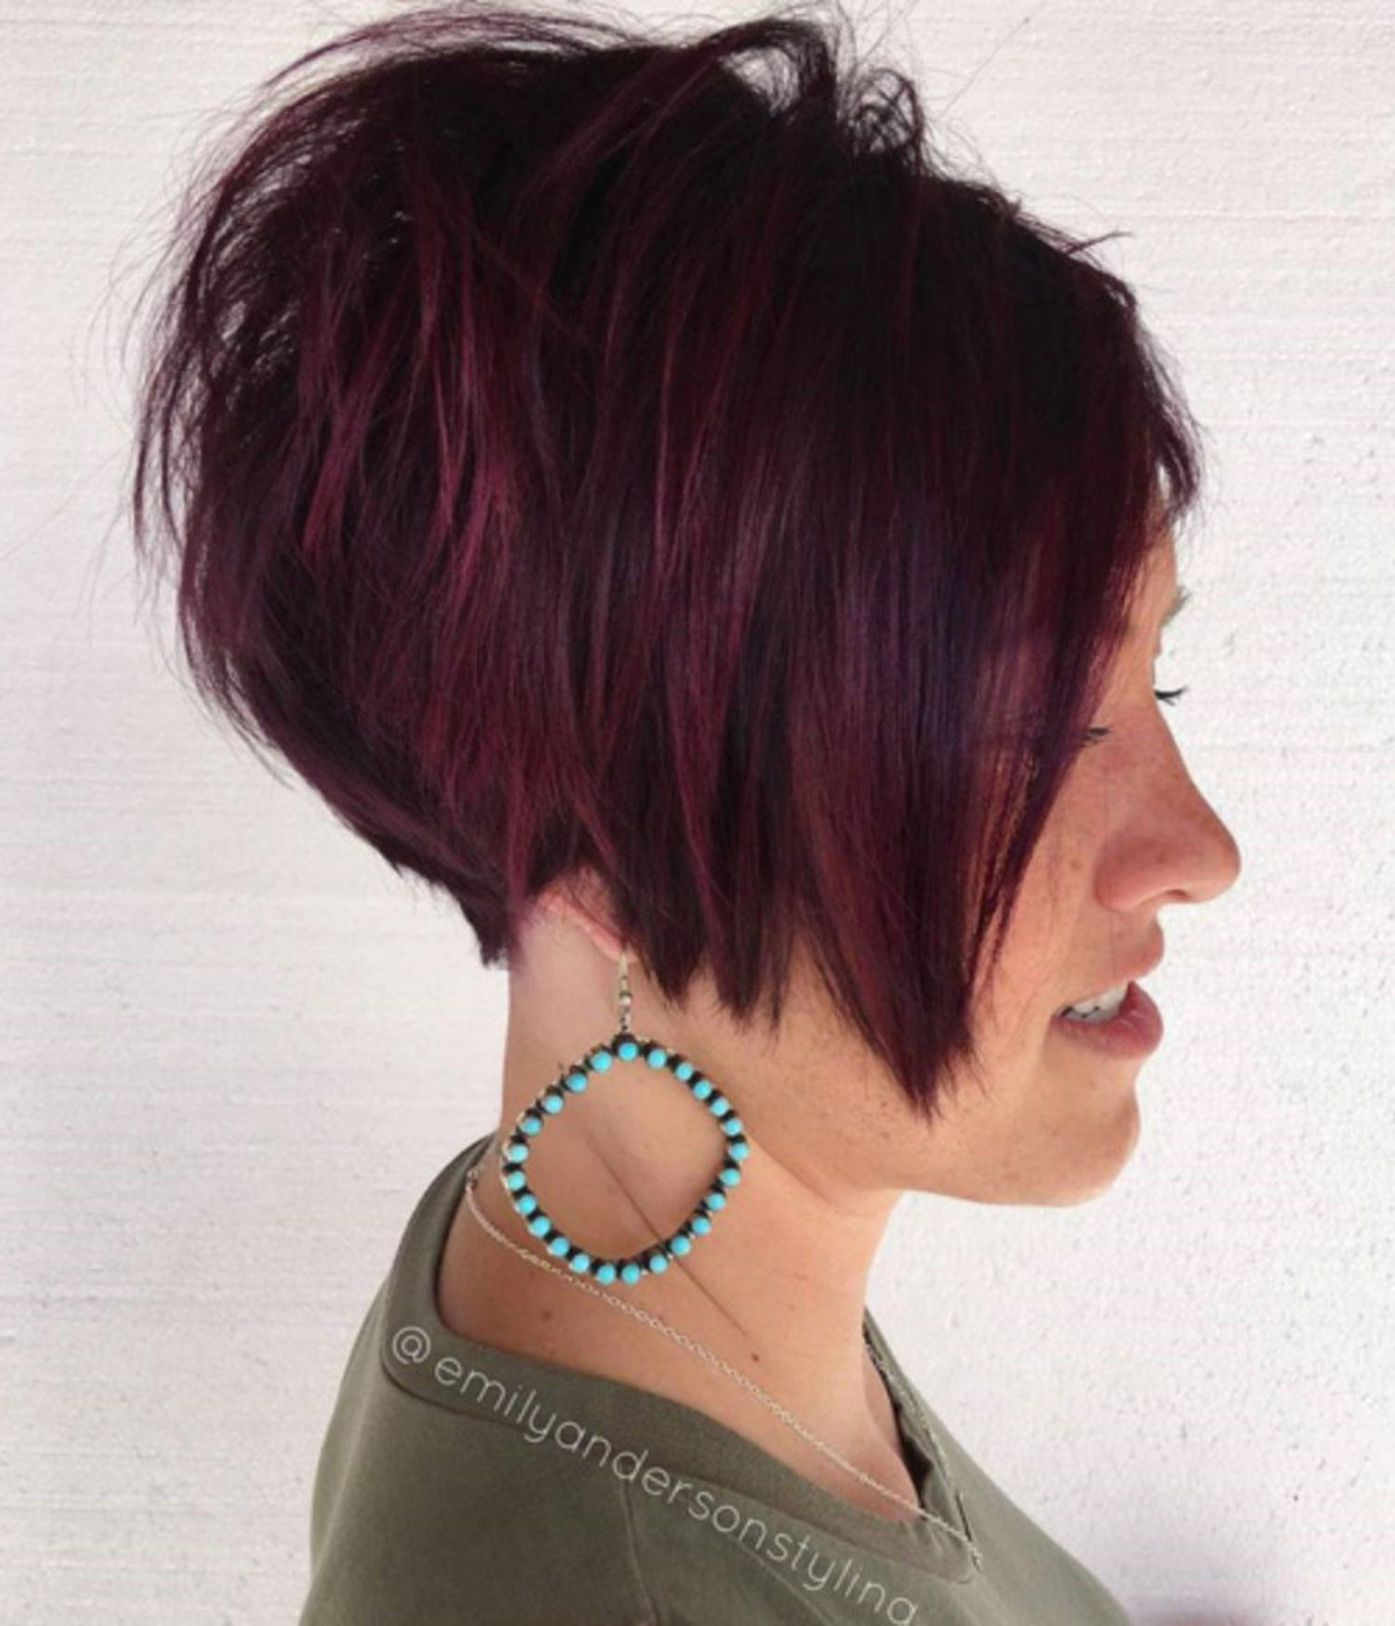 short shaggy spiky edgy pixie cuts and hairstyles in do